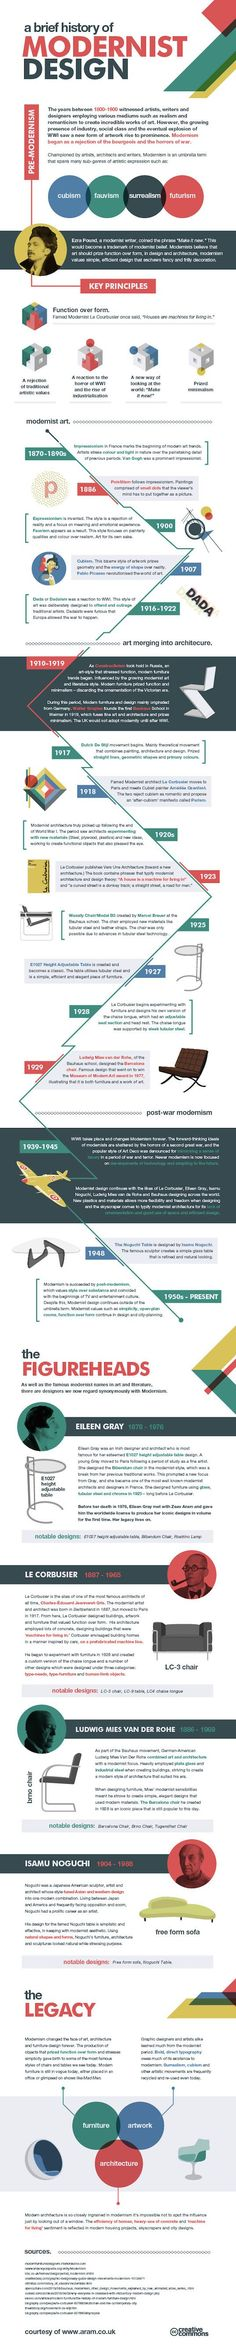 Infographic: Learn the history behind modernist design